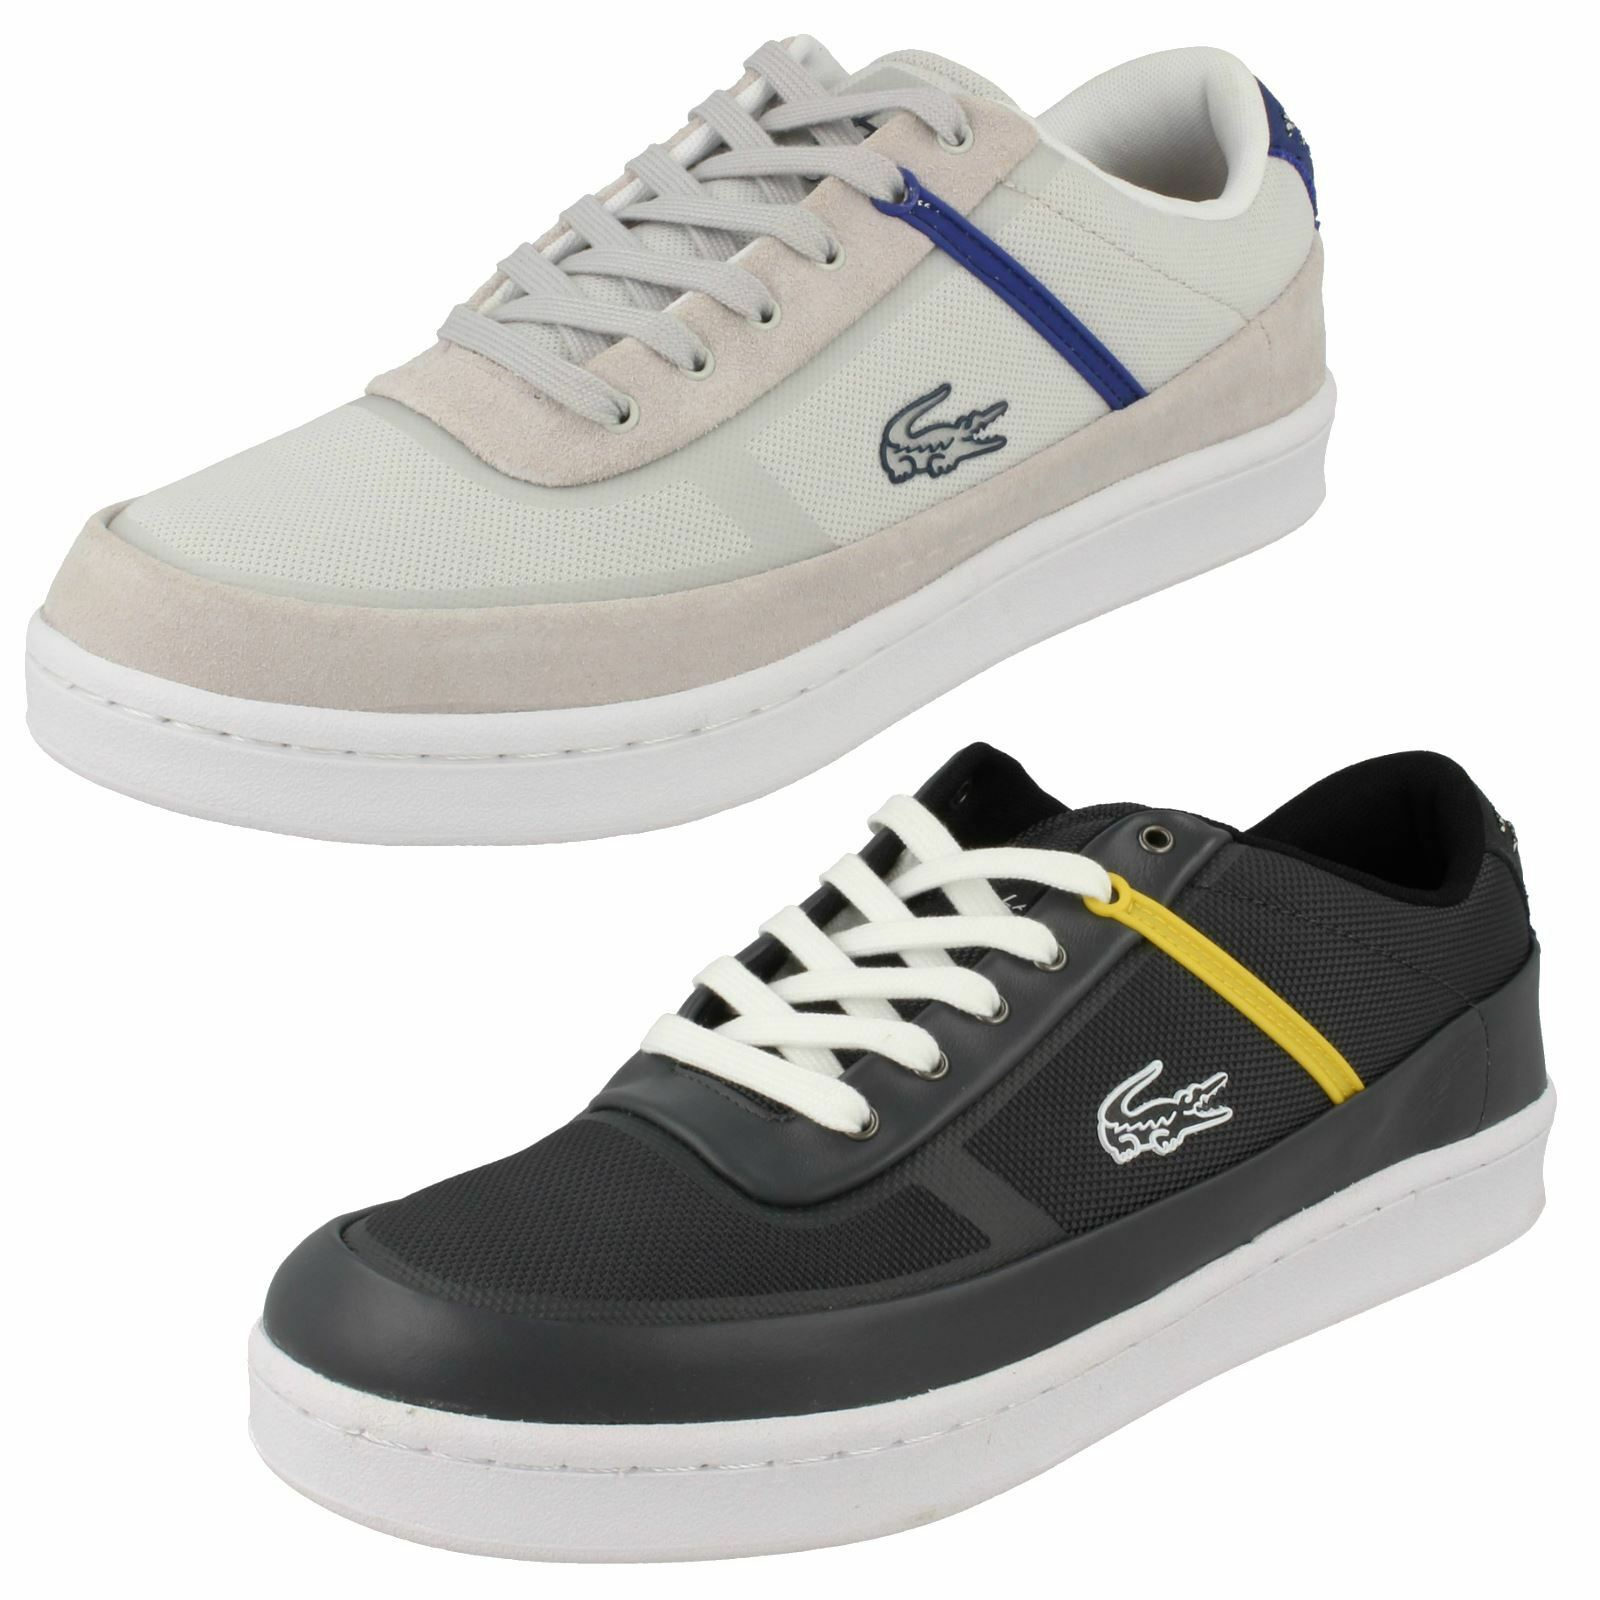 Mens Lacoste Casual Lace Up Trainers 'Court Line'